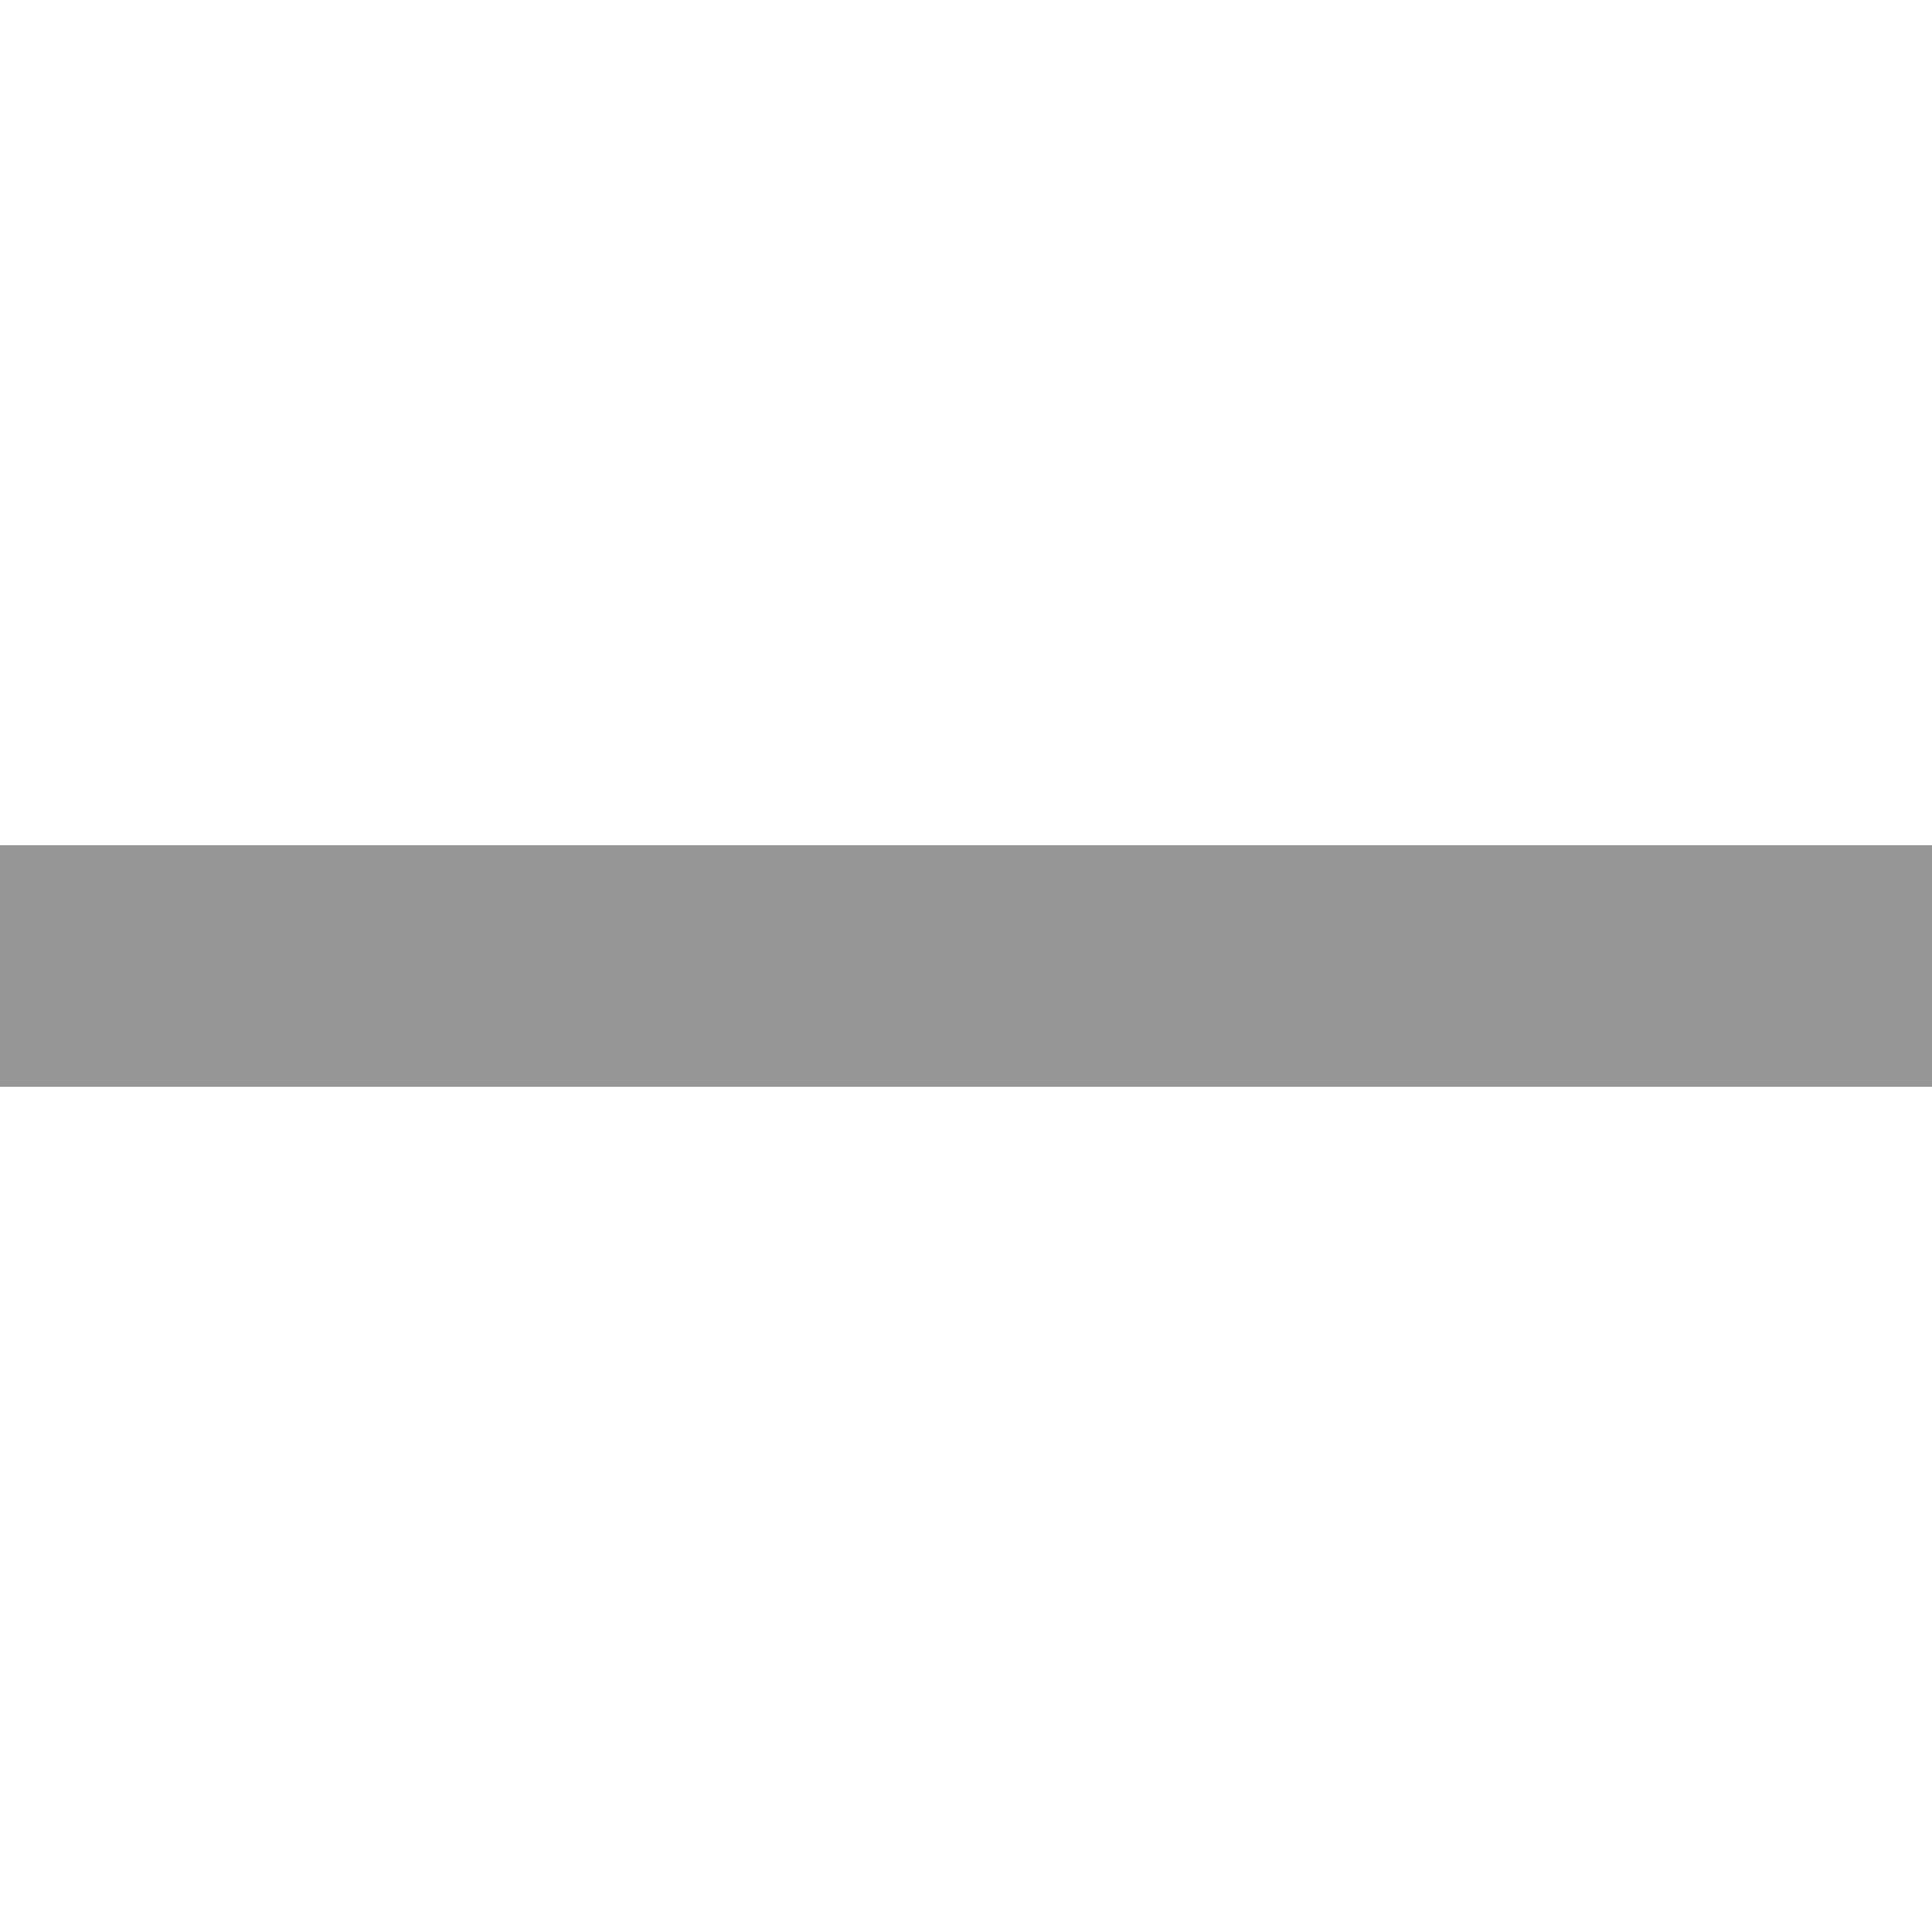 Png rectangle. File gray tiny svg